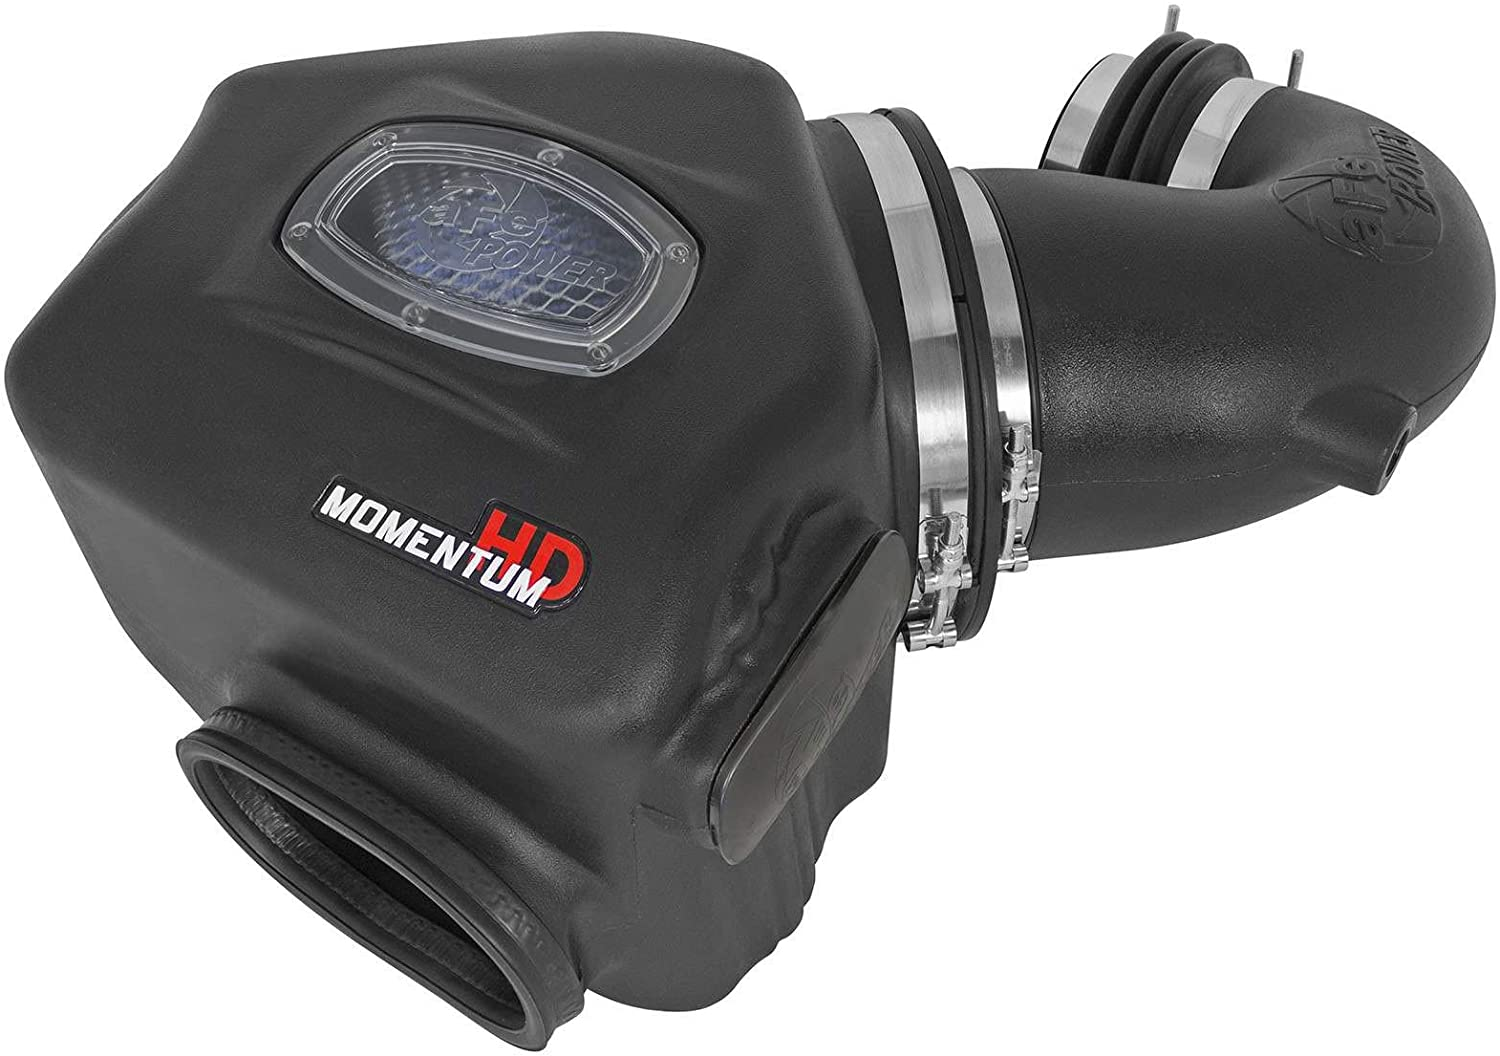 aFe Power Momentum HD 50-72001 Cold Air Intake Sstem for Dodge Oiled, 10-Layer Filter